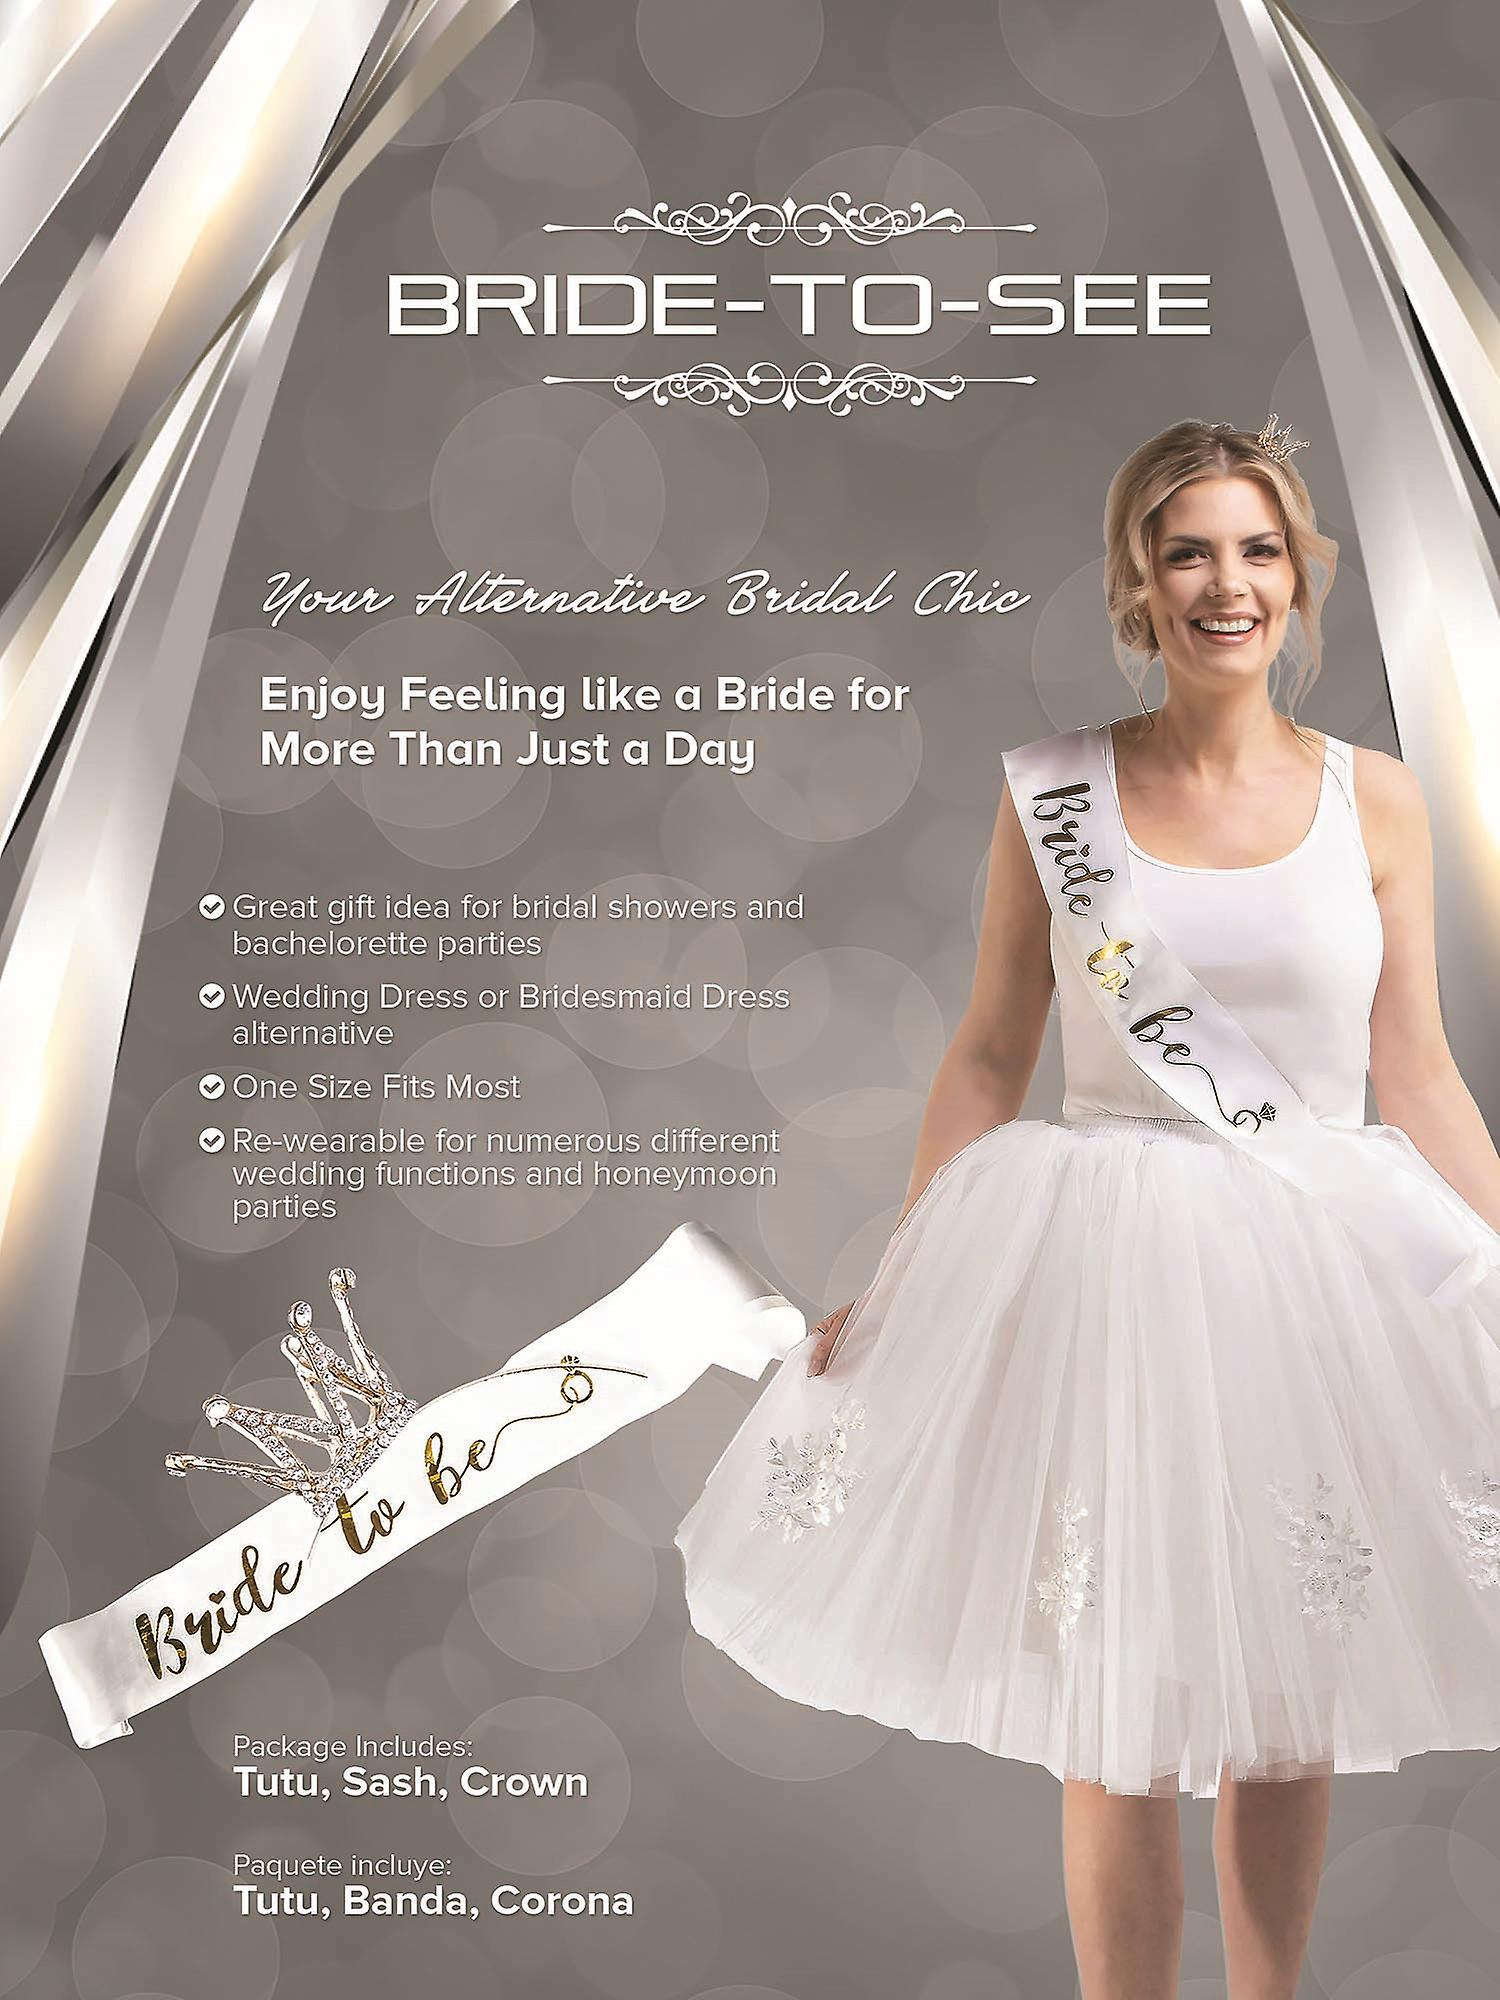 Bride-To-Be Bridal Shower Bachelorette Party 3 Pc Gift Set BTS103 White O/S